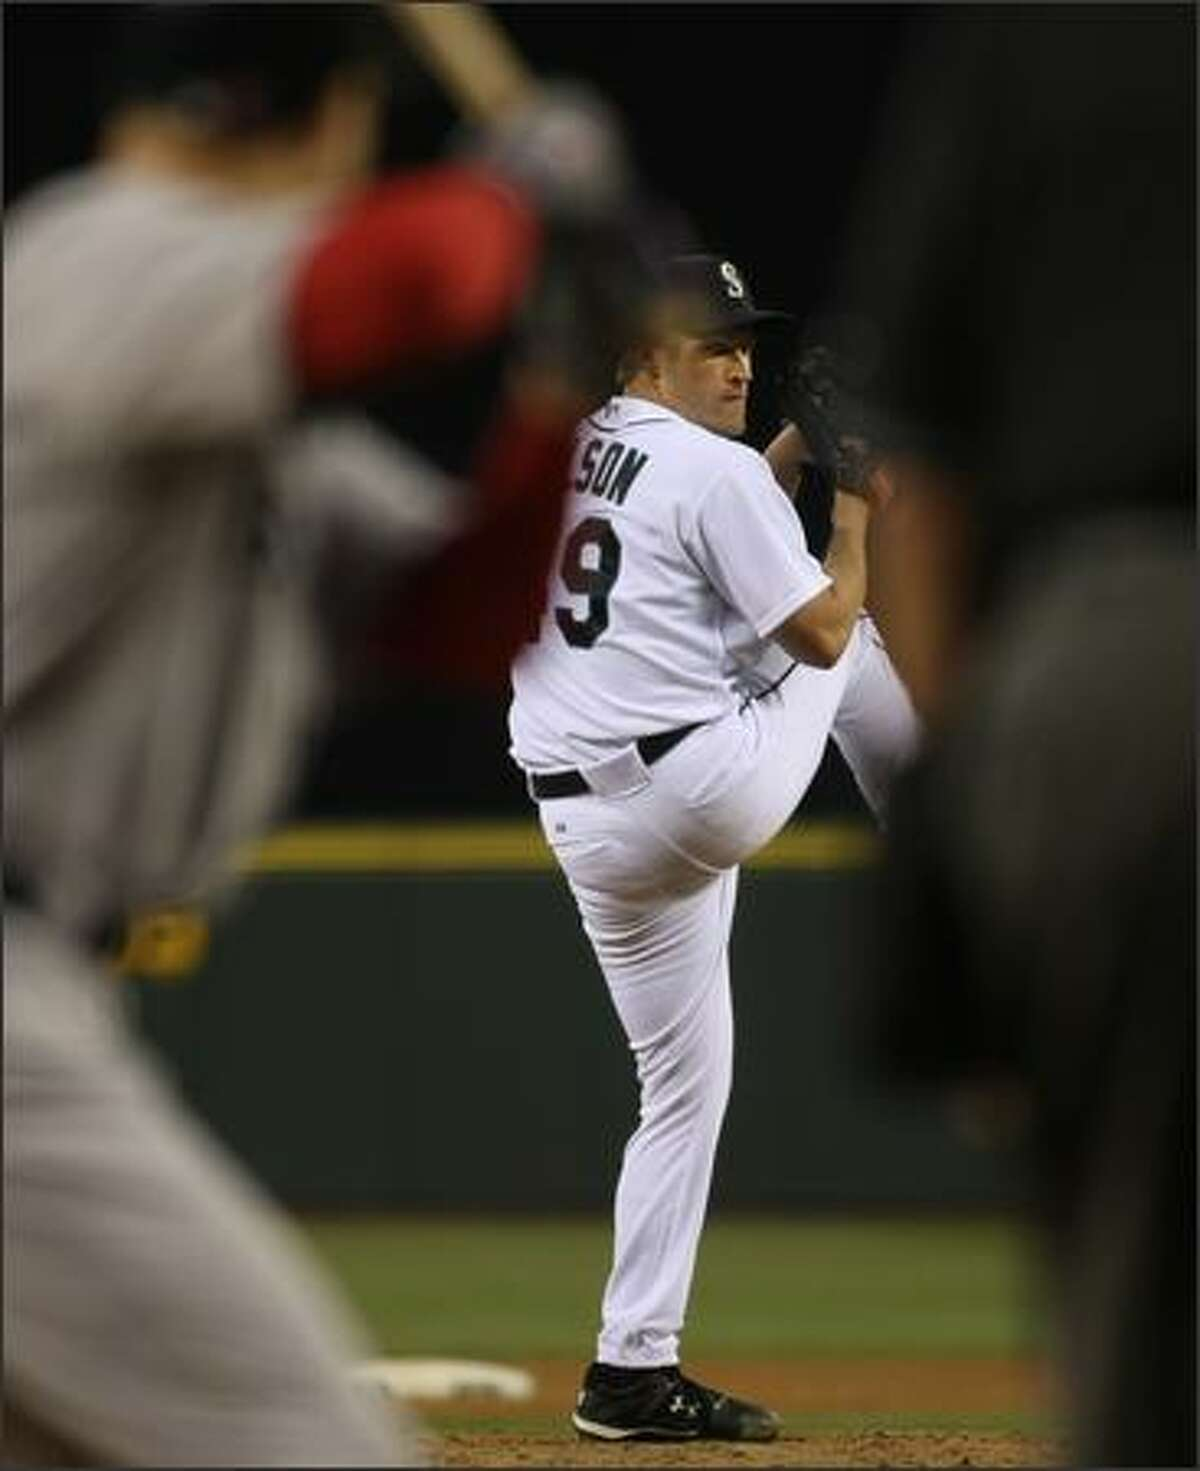 Garrett Olson pitches during the 5-3 loss to the Boston Red Sox at Safeco Field.